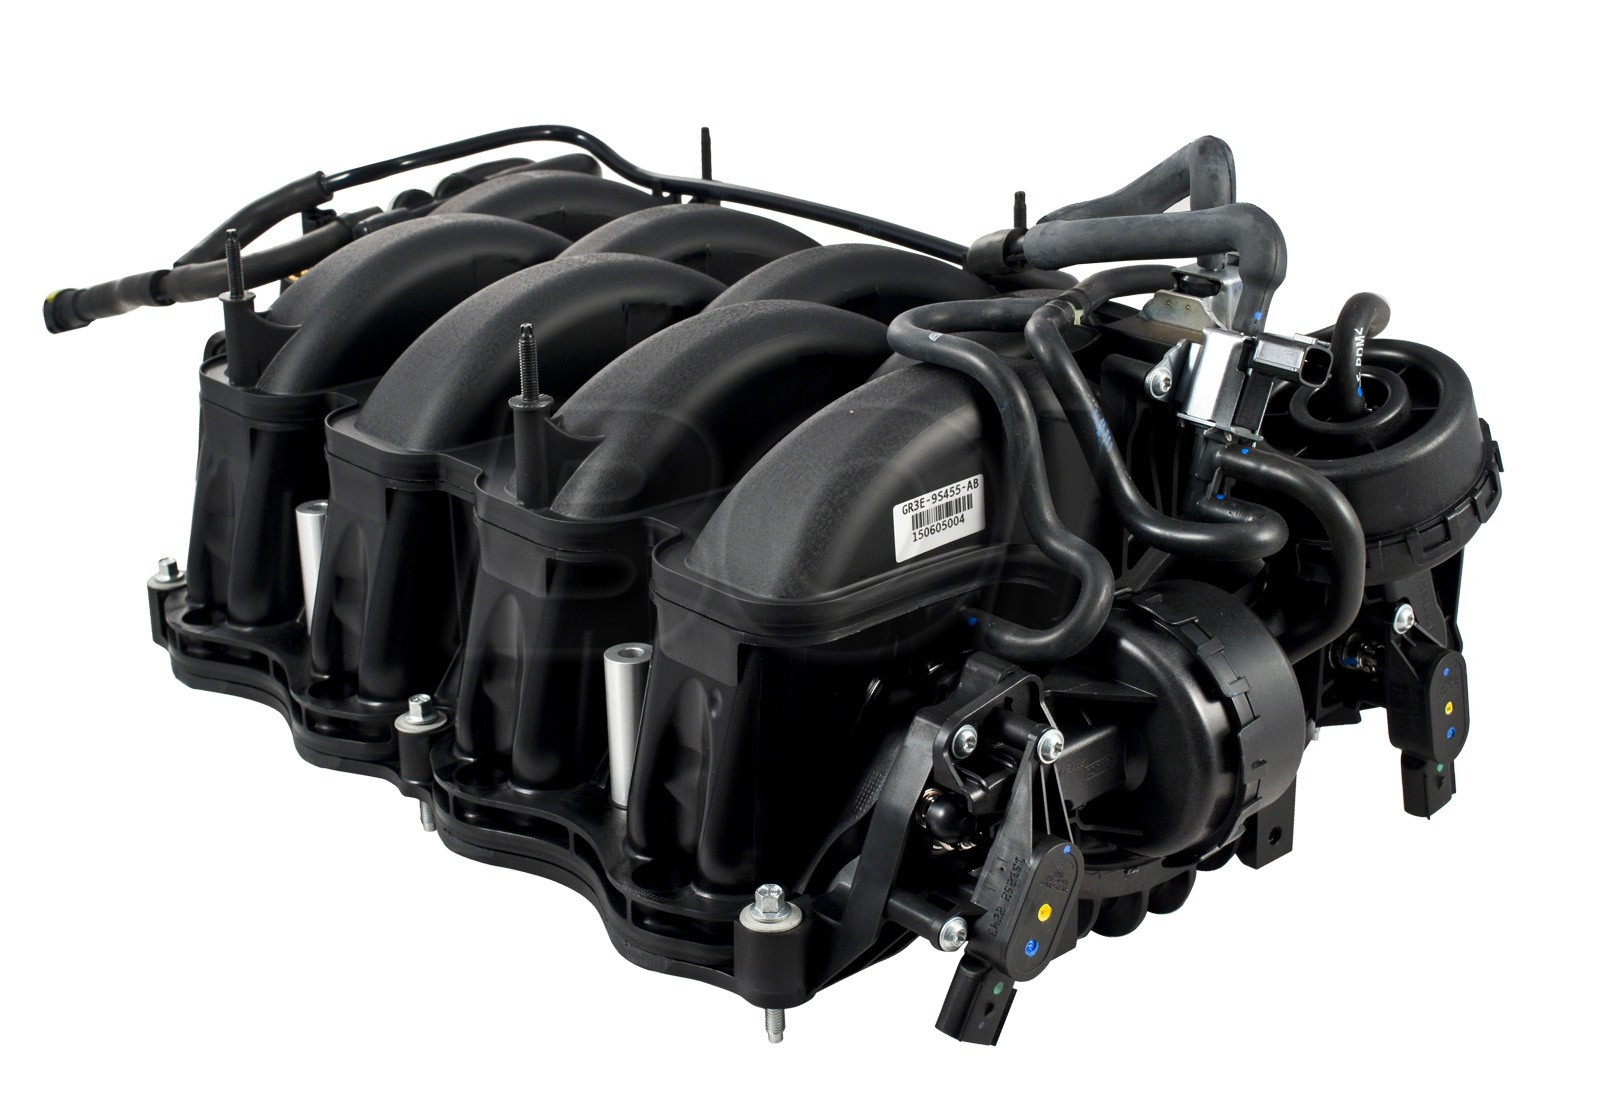 Shelby Cobra F150 >> 2015-2017 Mustang GT 5.0 Ford Racing Shelby GT350 Engine Intake Manifold Kit - Shelby GT350 ...